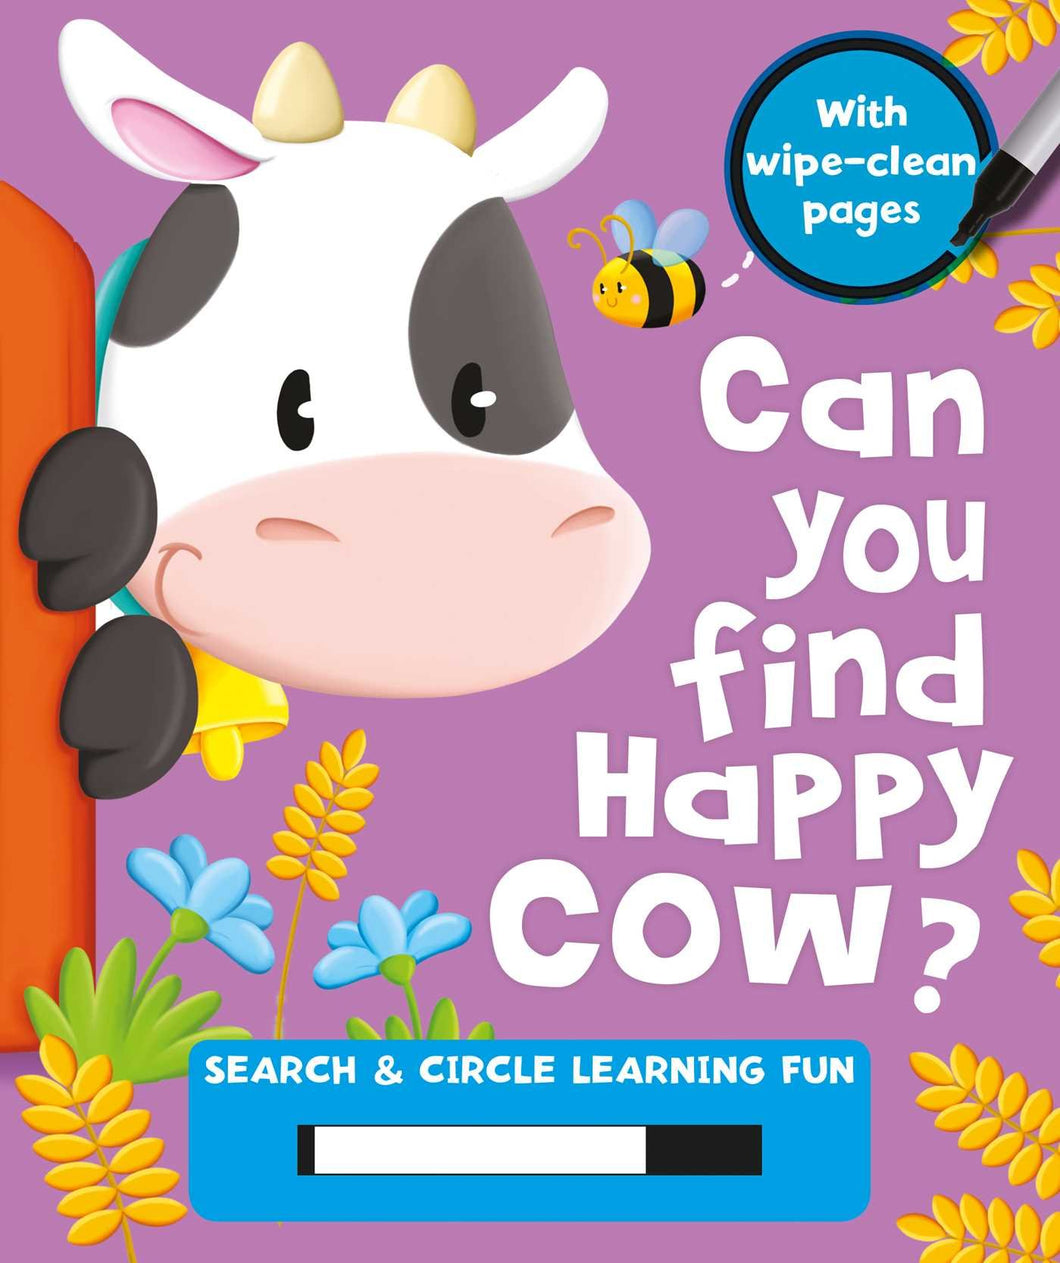 Can You Find Happy Cow?: Search & Circle Learning Fun